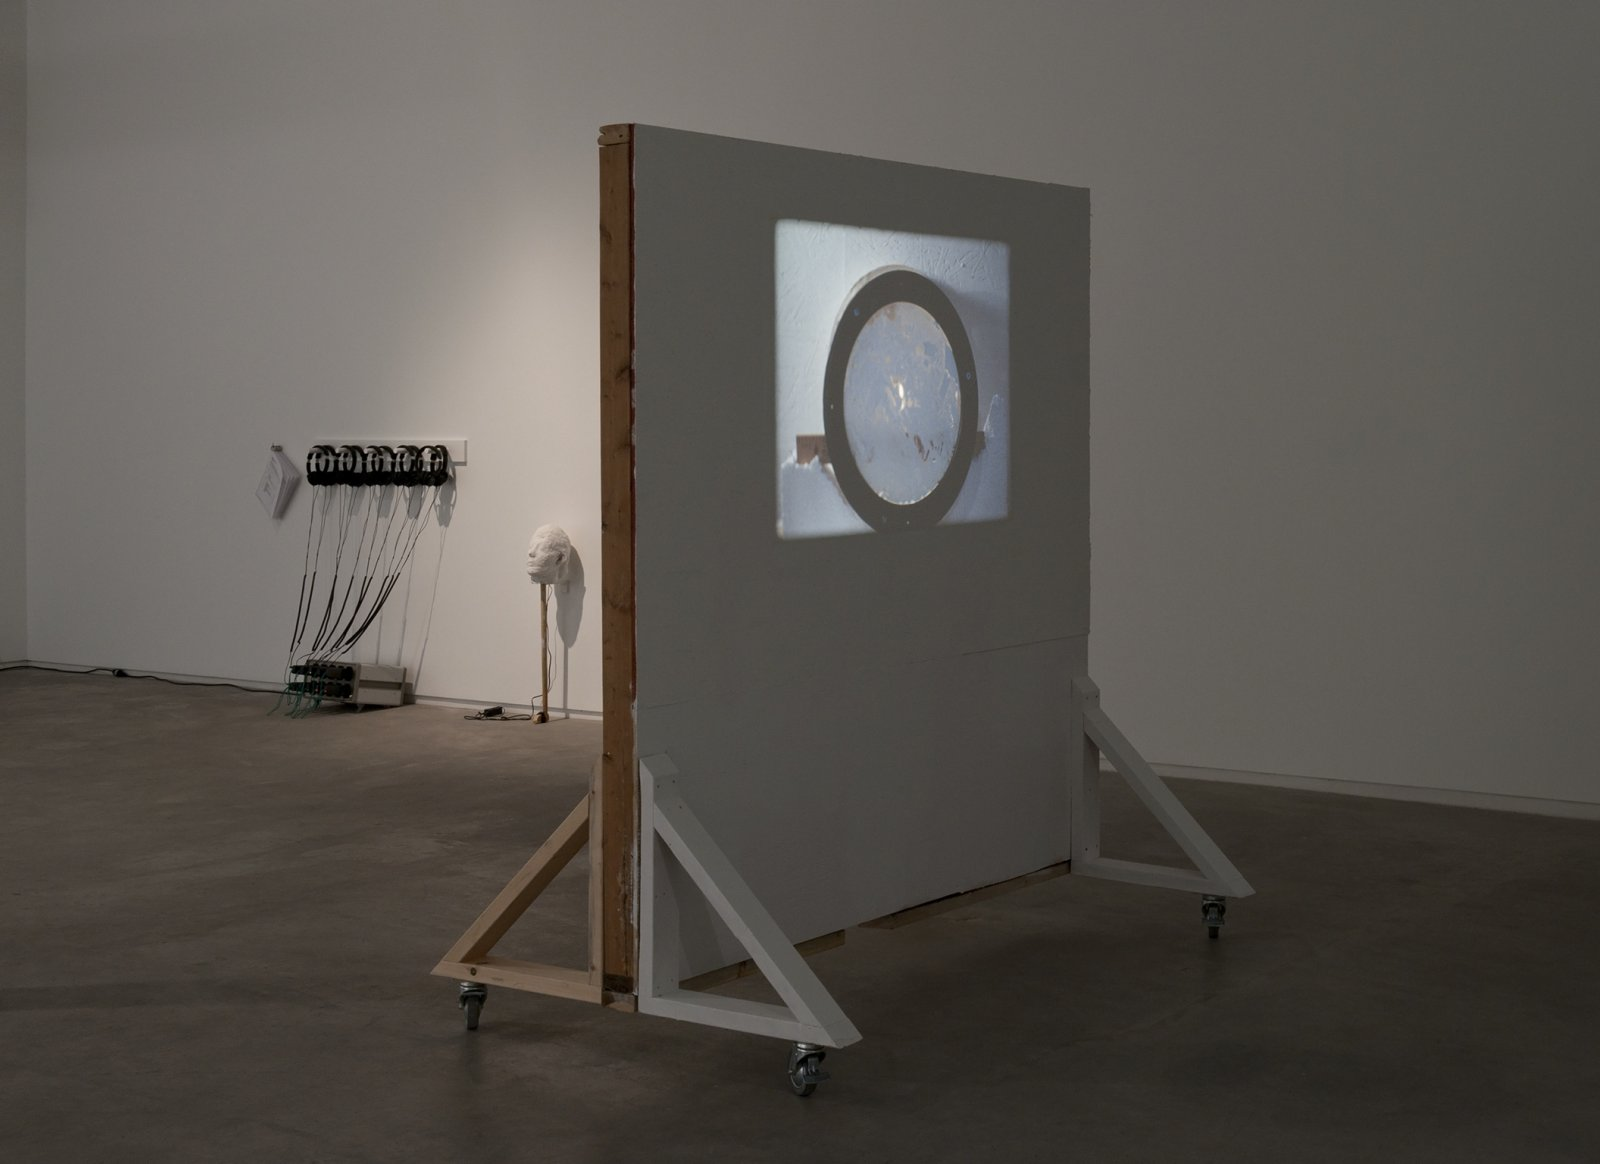 Julia Feyrer, Dailies, 2012, 16 mm film loop silent, projection wall, 20 minutes, wall dimensions: 79 x 72 x 44 in. (200 x 183 x 112 cm) by Julia Feyrer